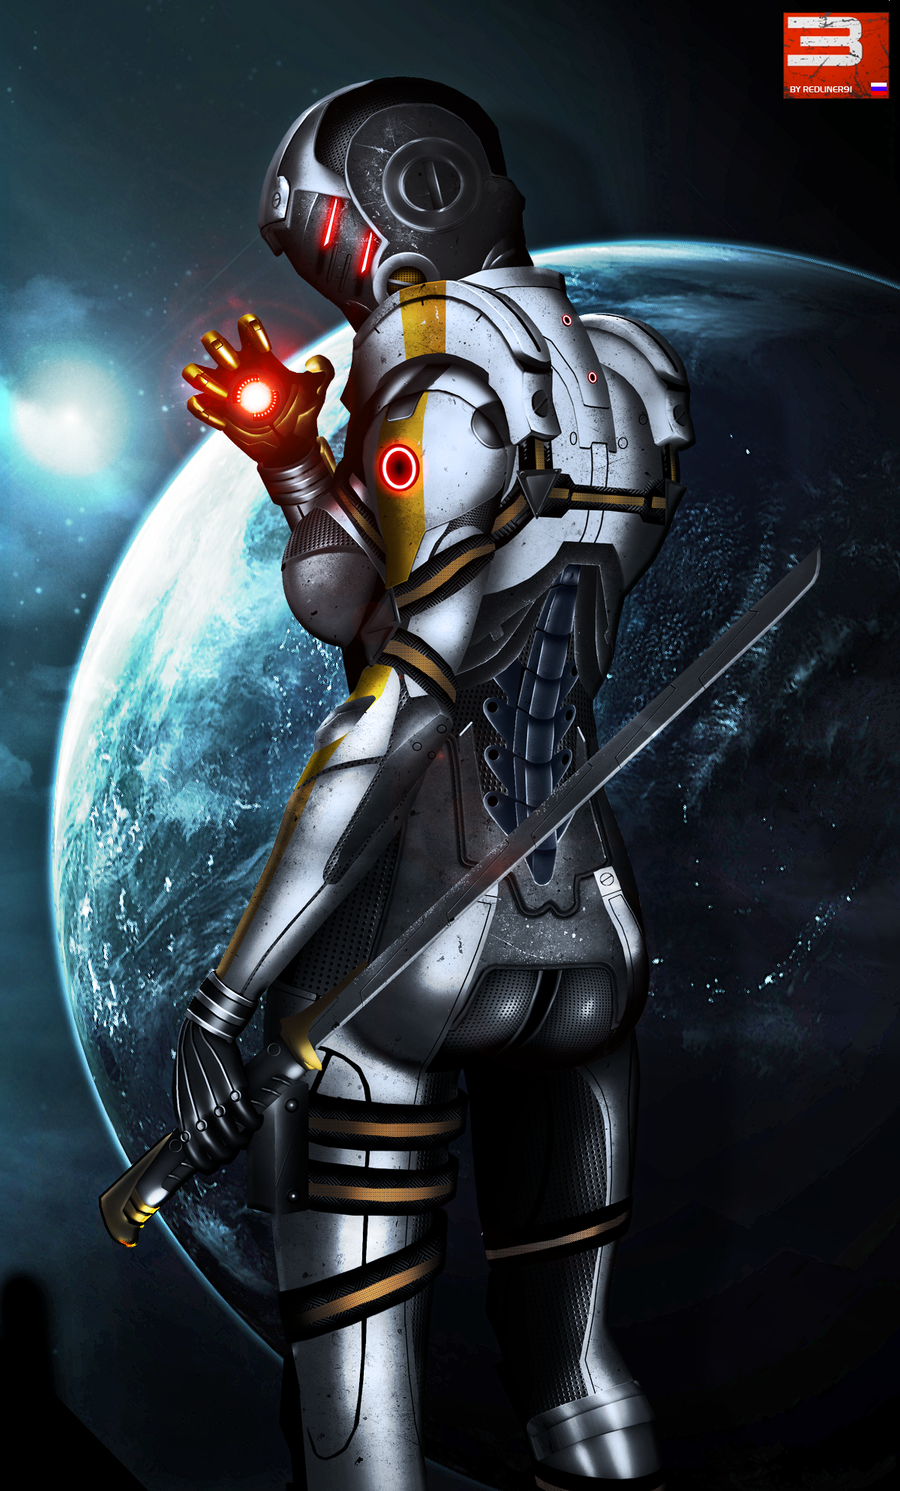 Mass Effect 3 Cerberus Phantom (2012) by RedLineR91